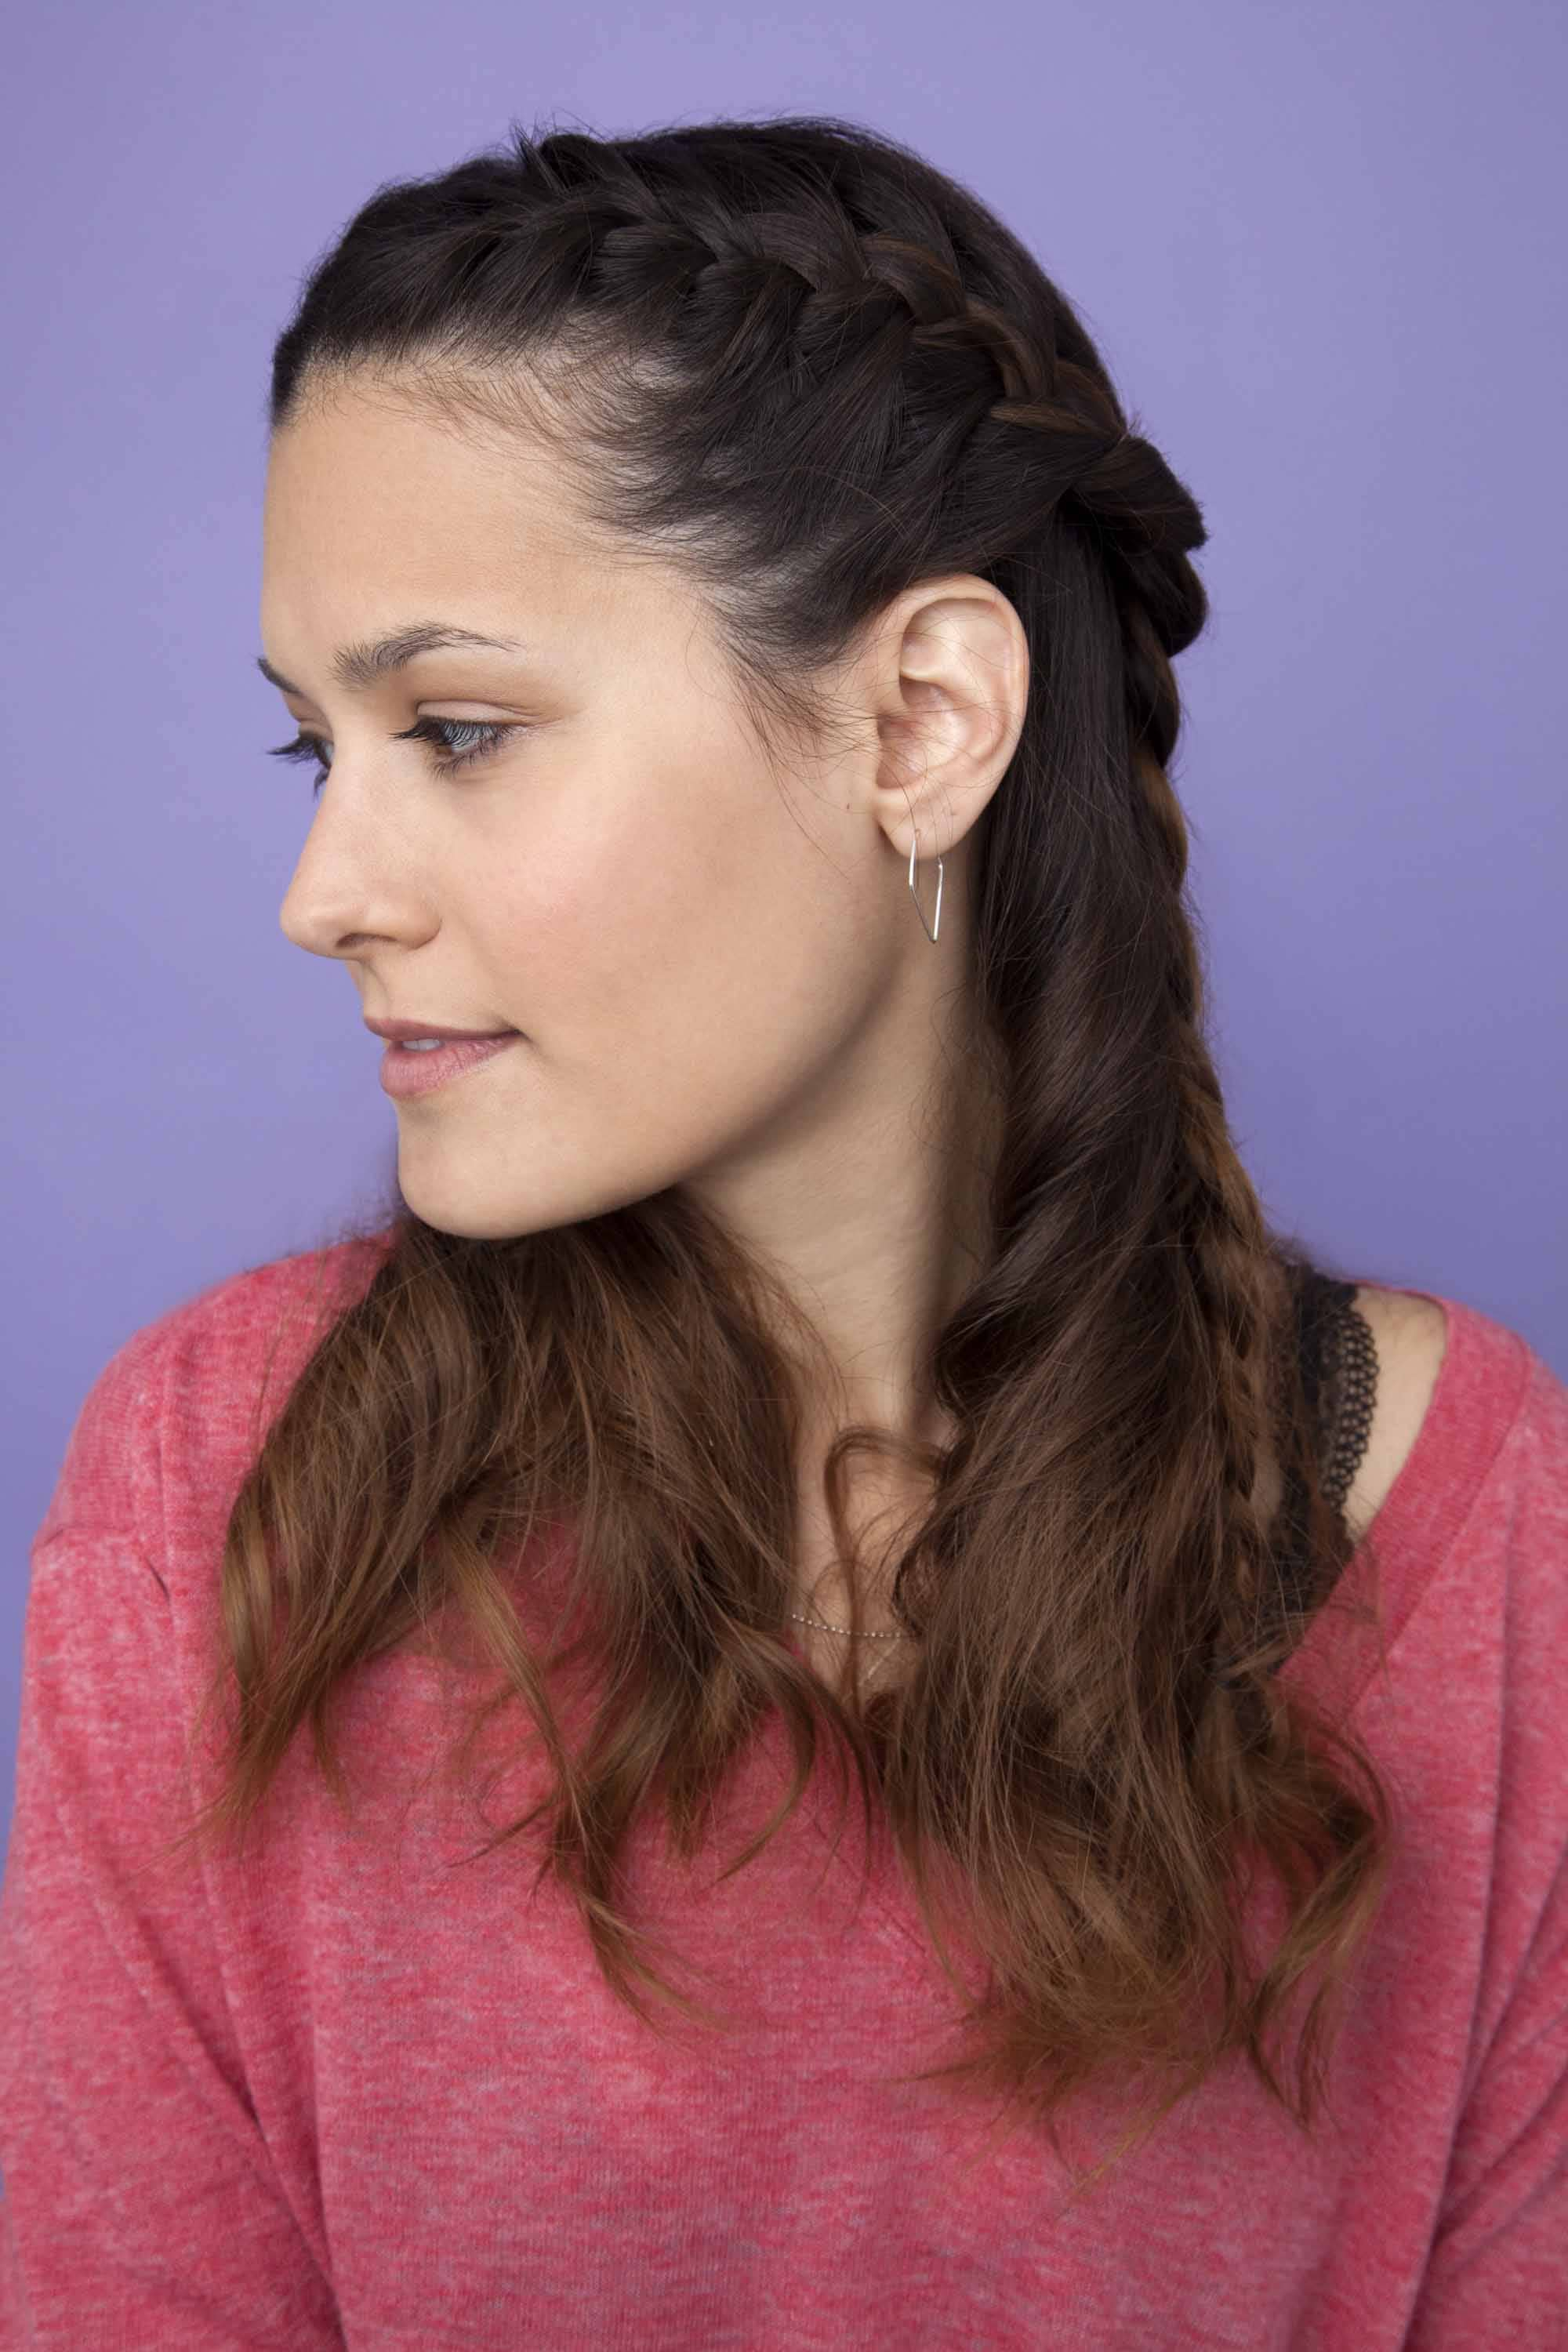 half up half down braid: young woman with side braided hairstyle on long dark brown hair